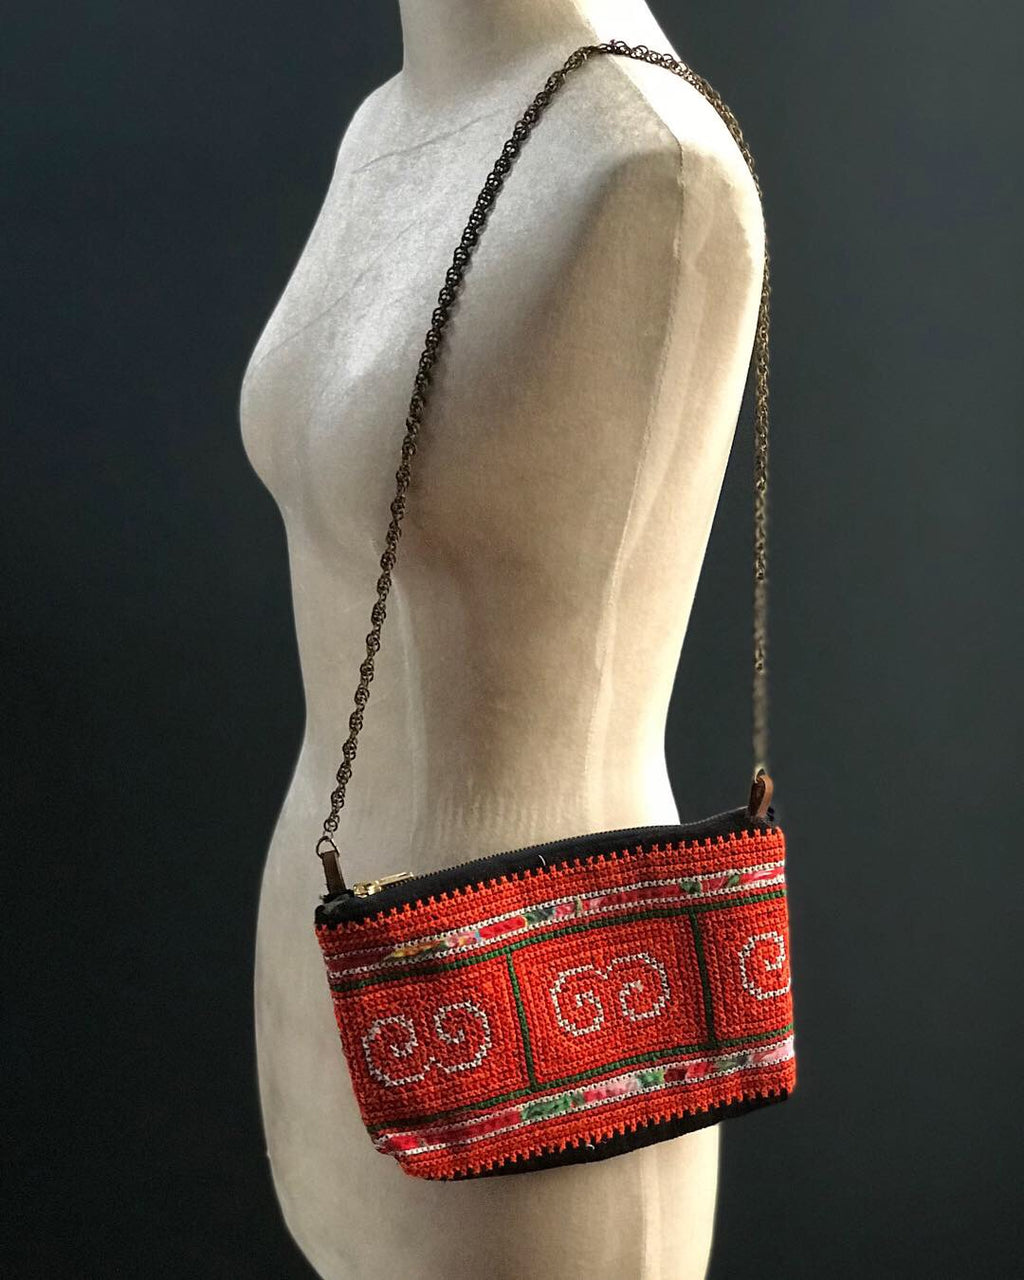 Handbag made from H'mong traditional textile